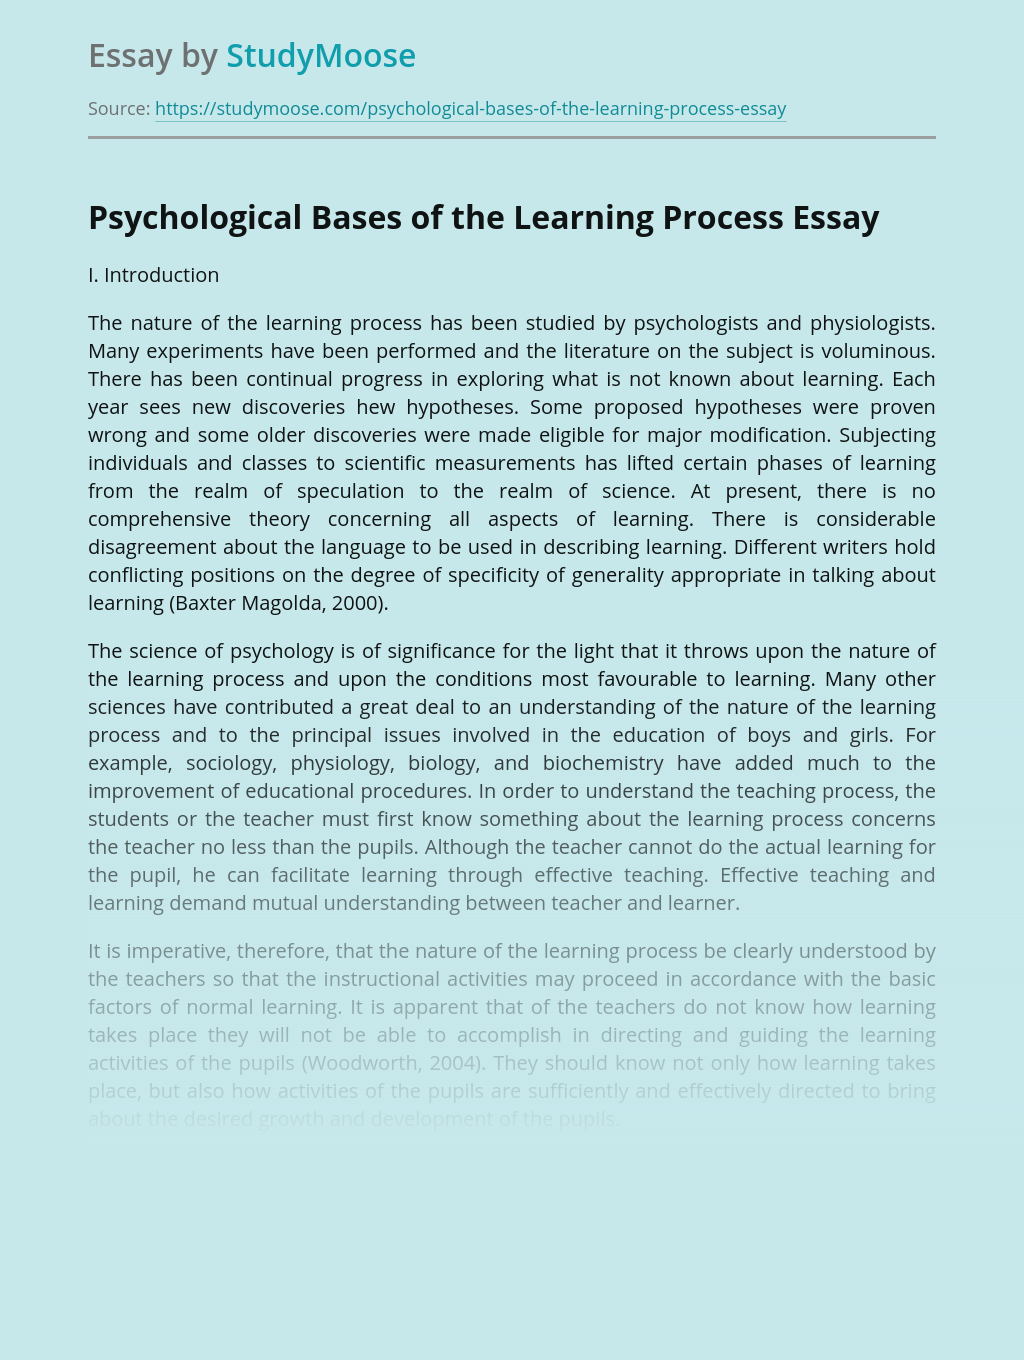 Psychological Bases of the Learning Process